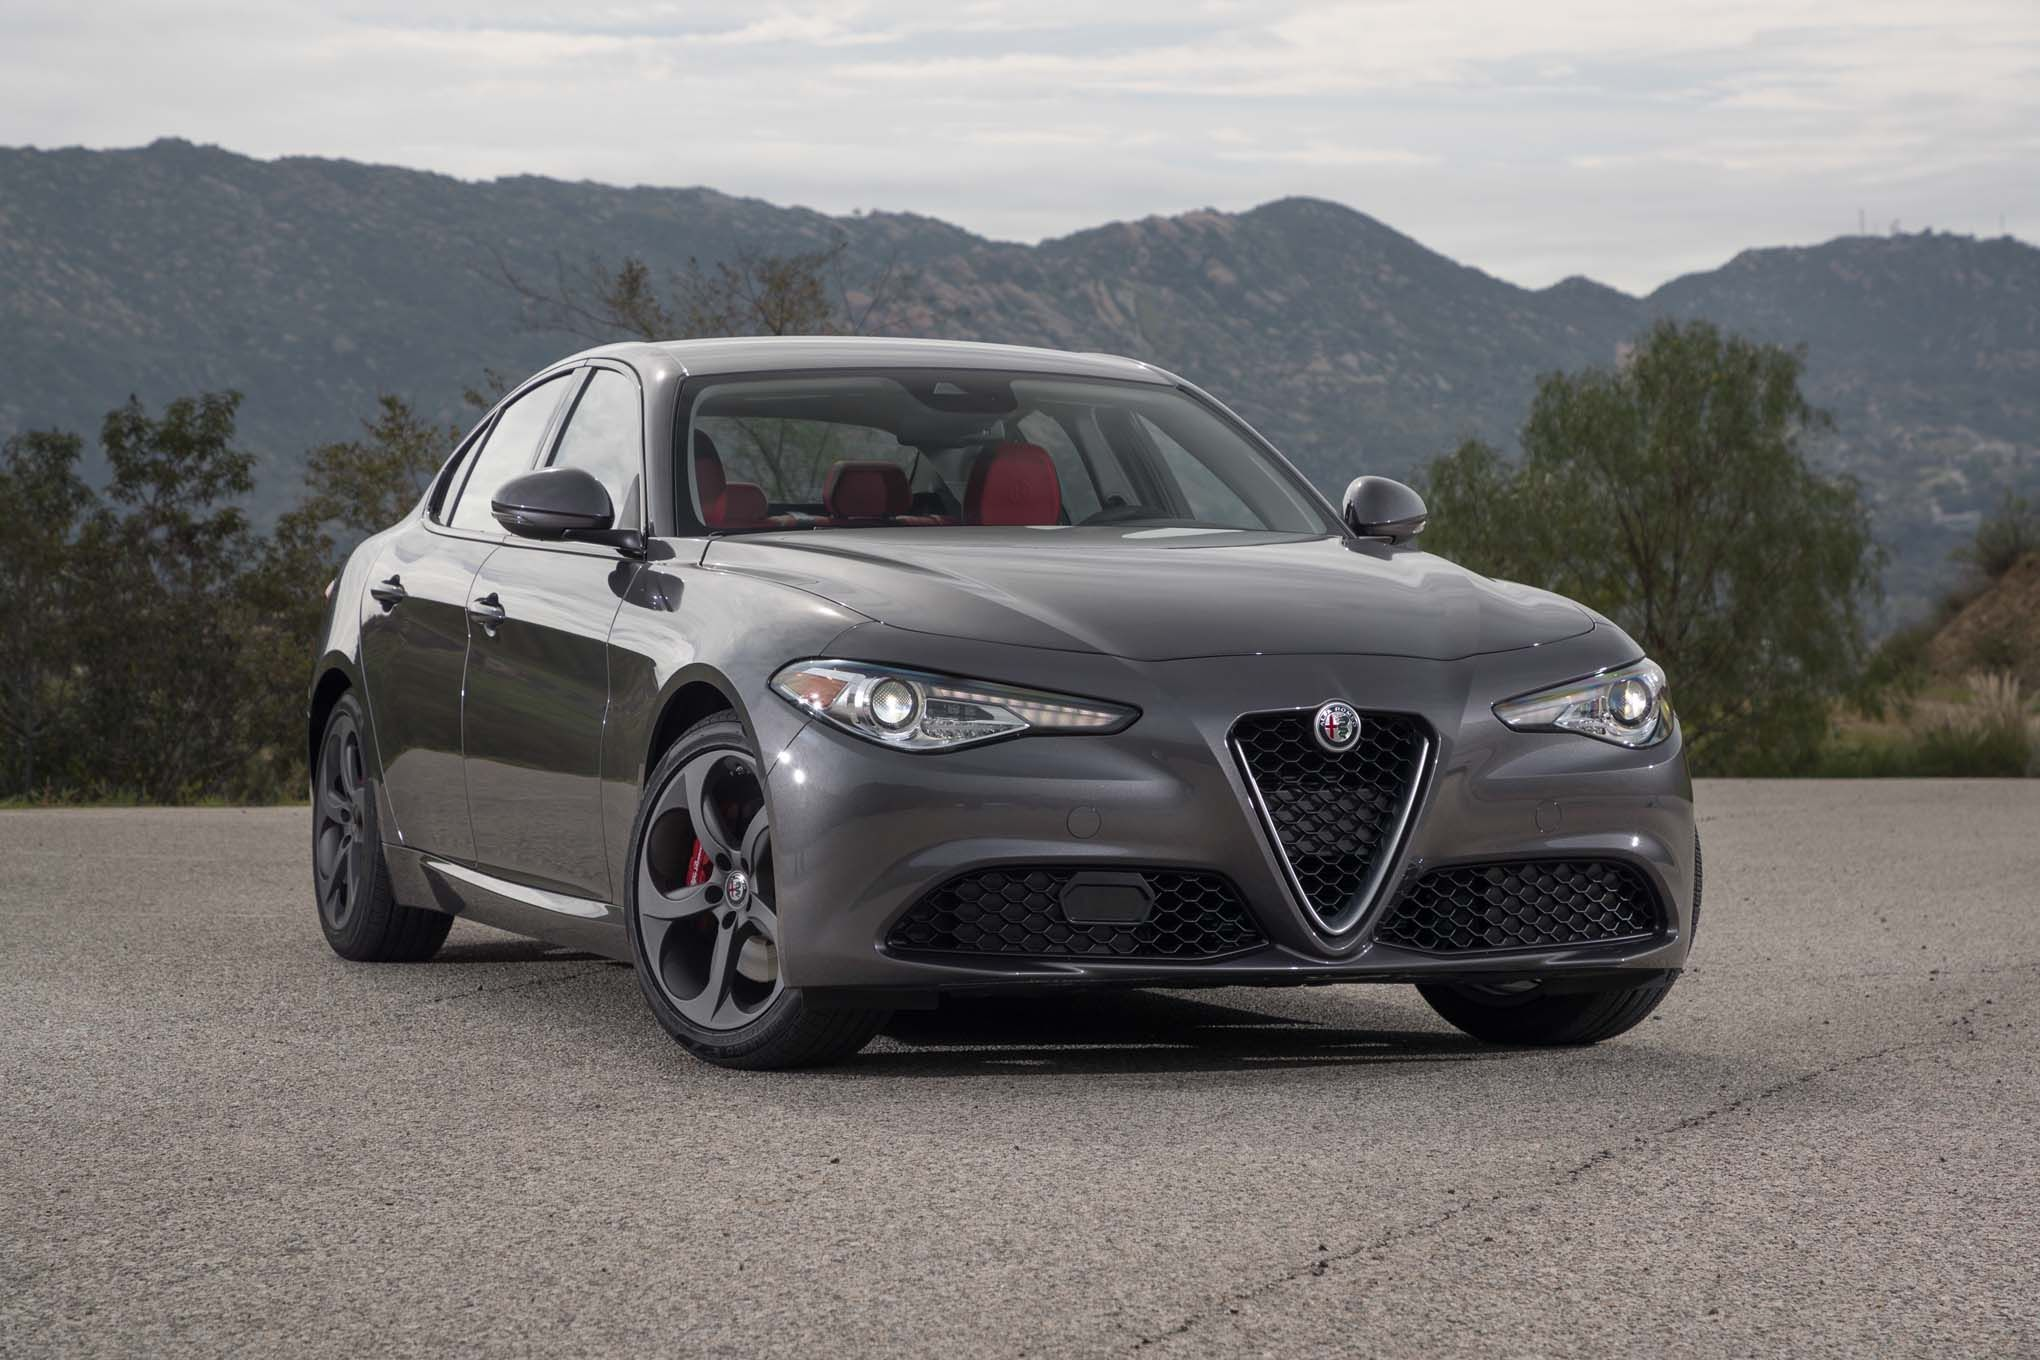 Alfa Romeo Giulia 2 0 Alfa Romeo Alfa Romeo Giulia Car Pictures